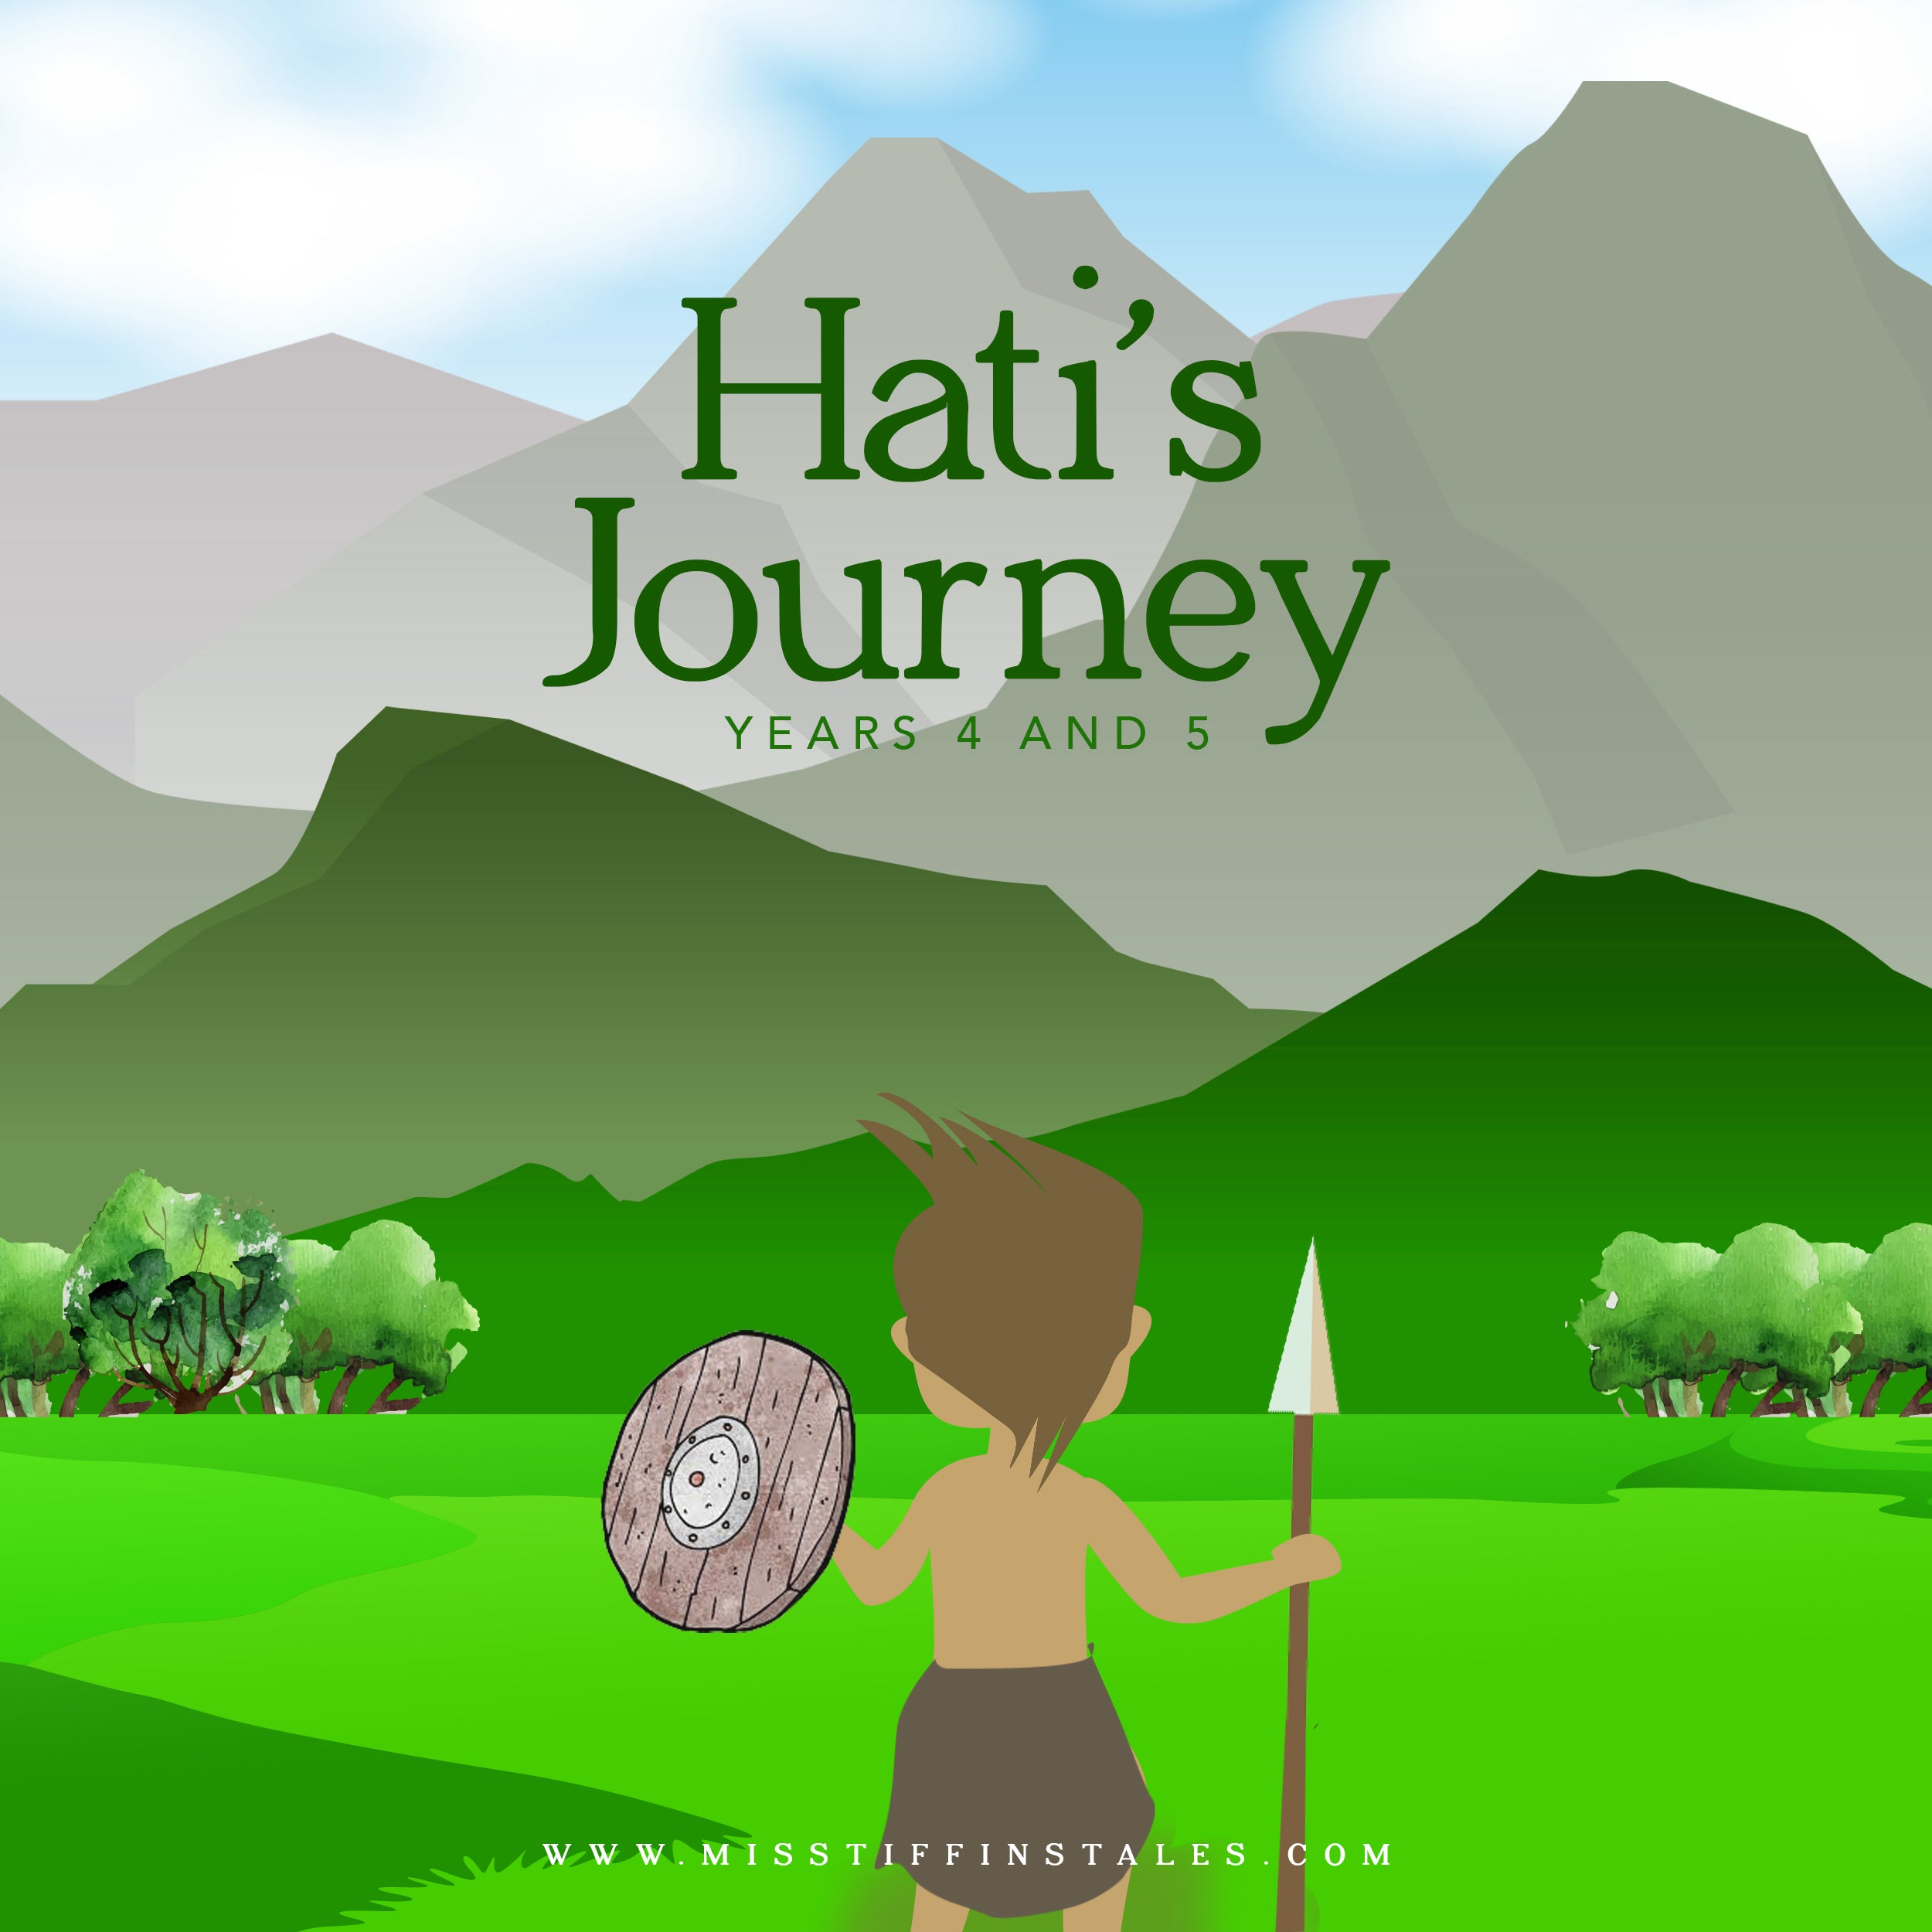 Hati's Journey, Years 4 and 5- Journeys and Quests